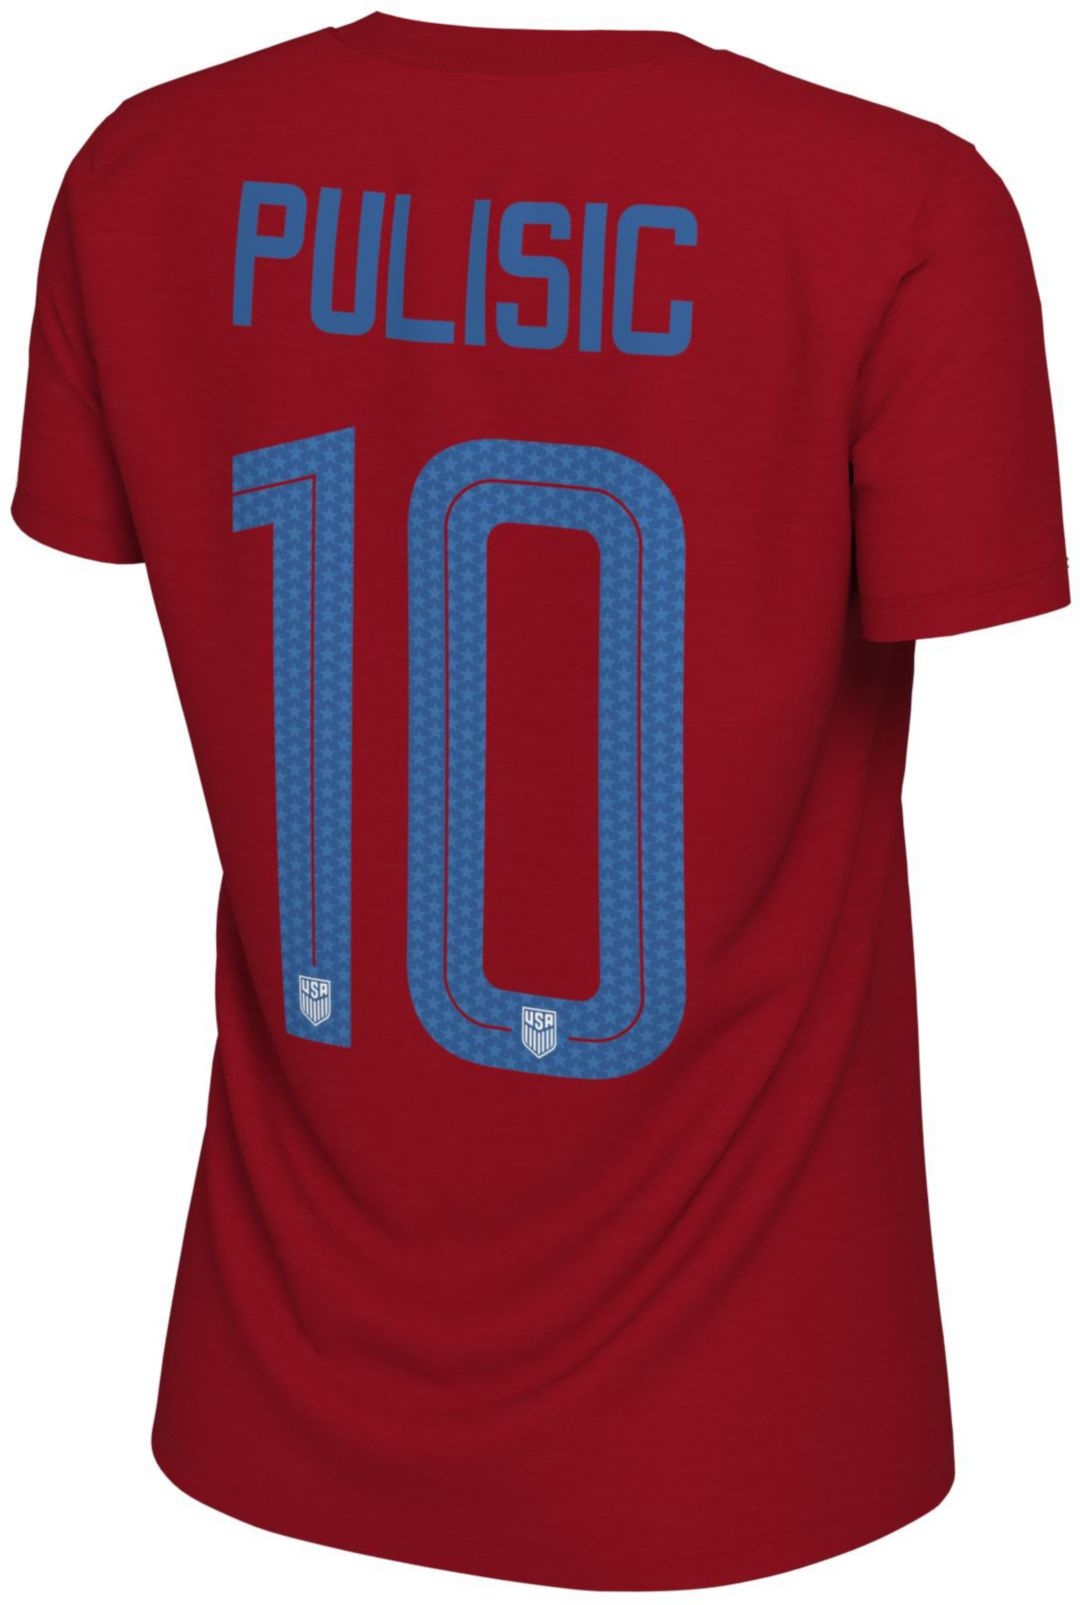 more photos 53a8c 4c755 Nike Women's USA Soccer Christian Pulisic #10 Red Player T-Shirt